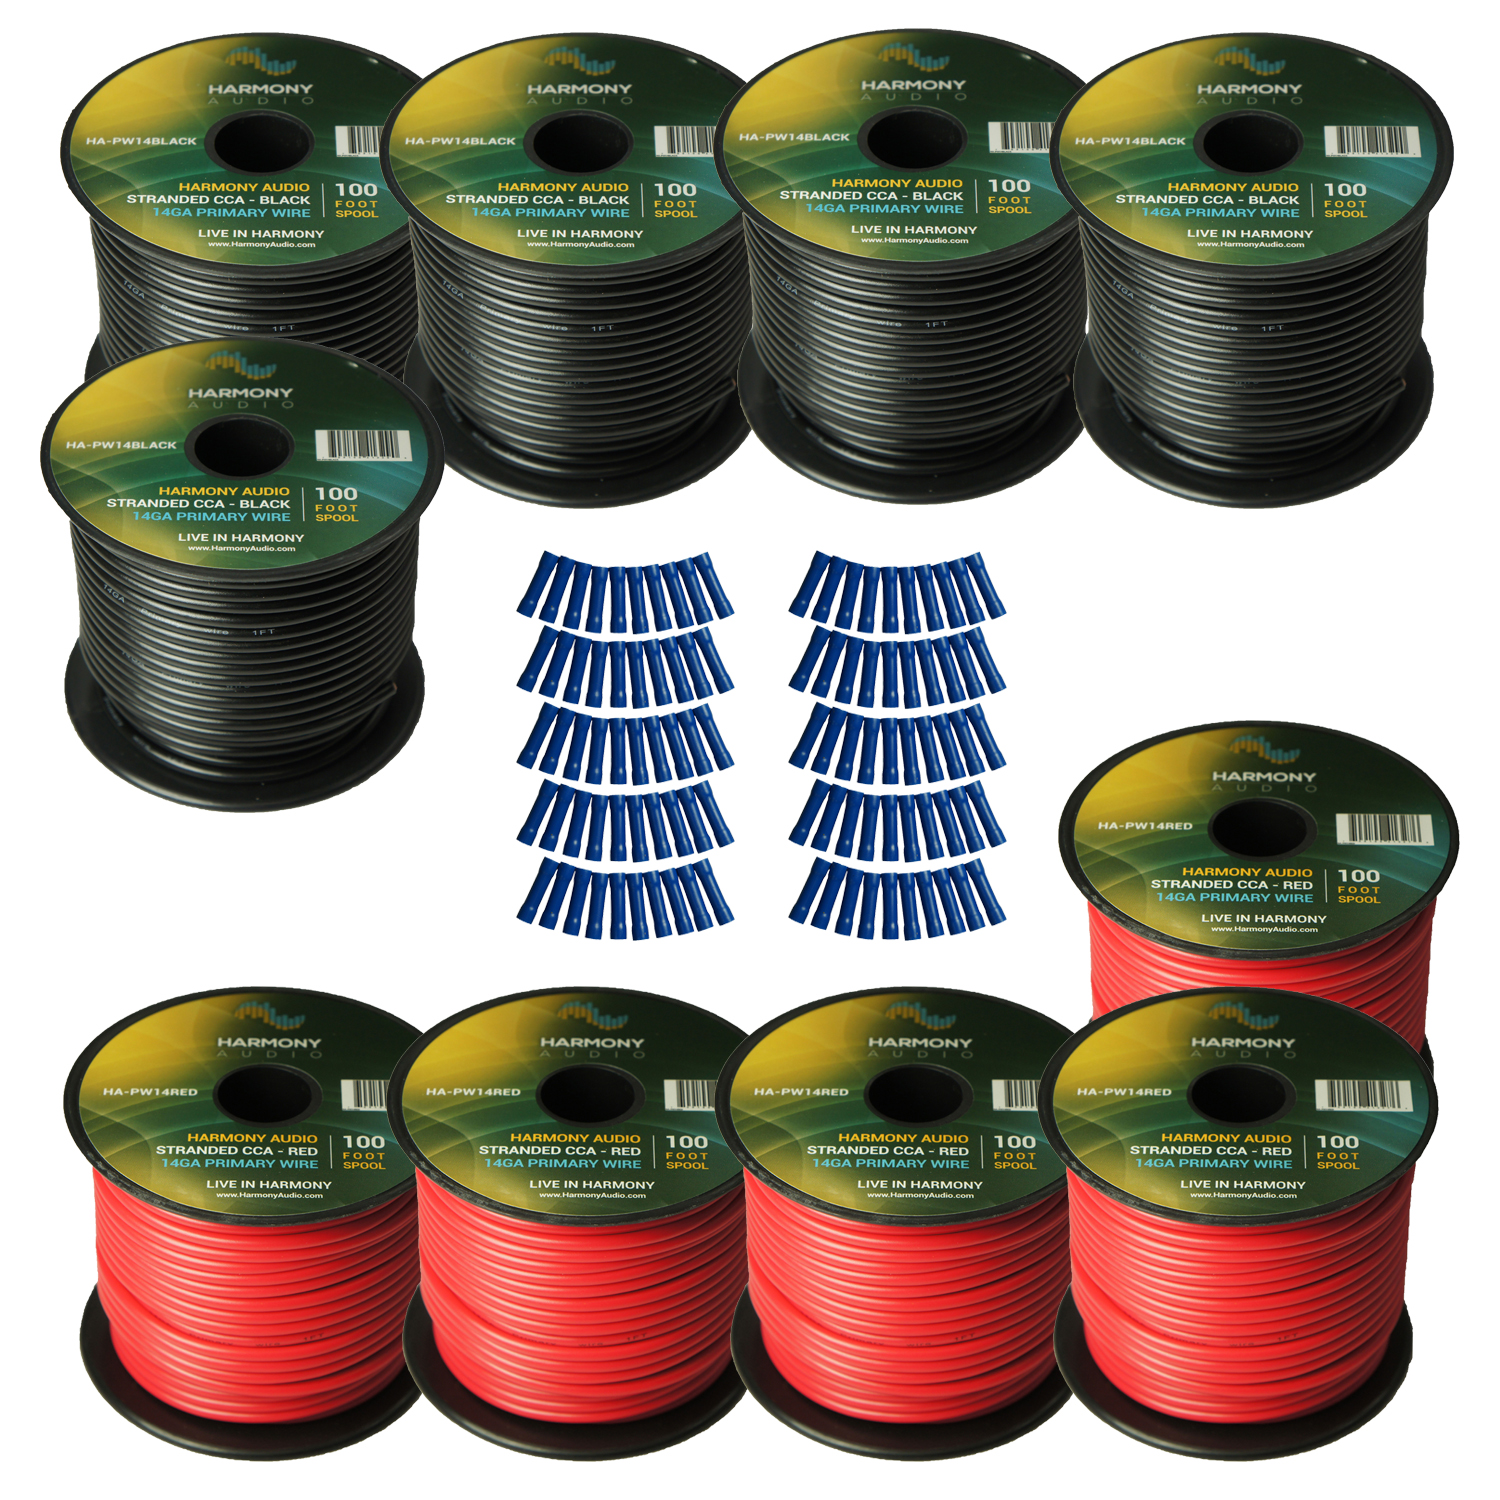 Harmony Audio Primary Single Conductor 14 Gauge Power or Ground Wire - 10 Rolls - 1000 Feet - Red & Black for Car Audio / Trailer / Model Train / Remote